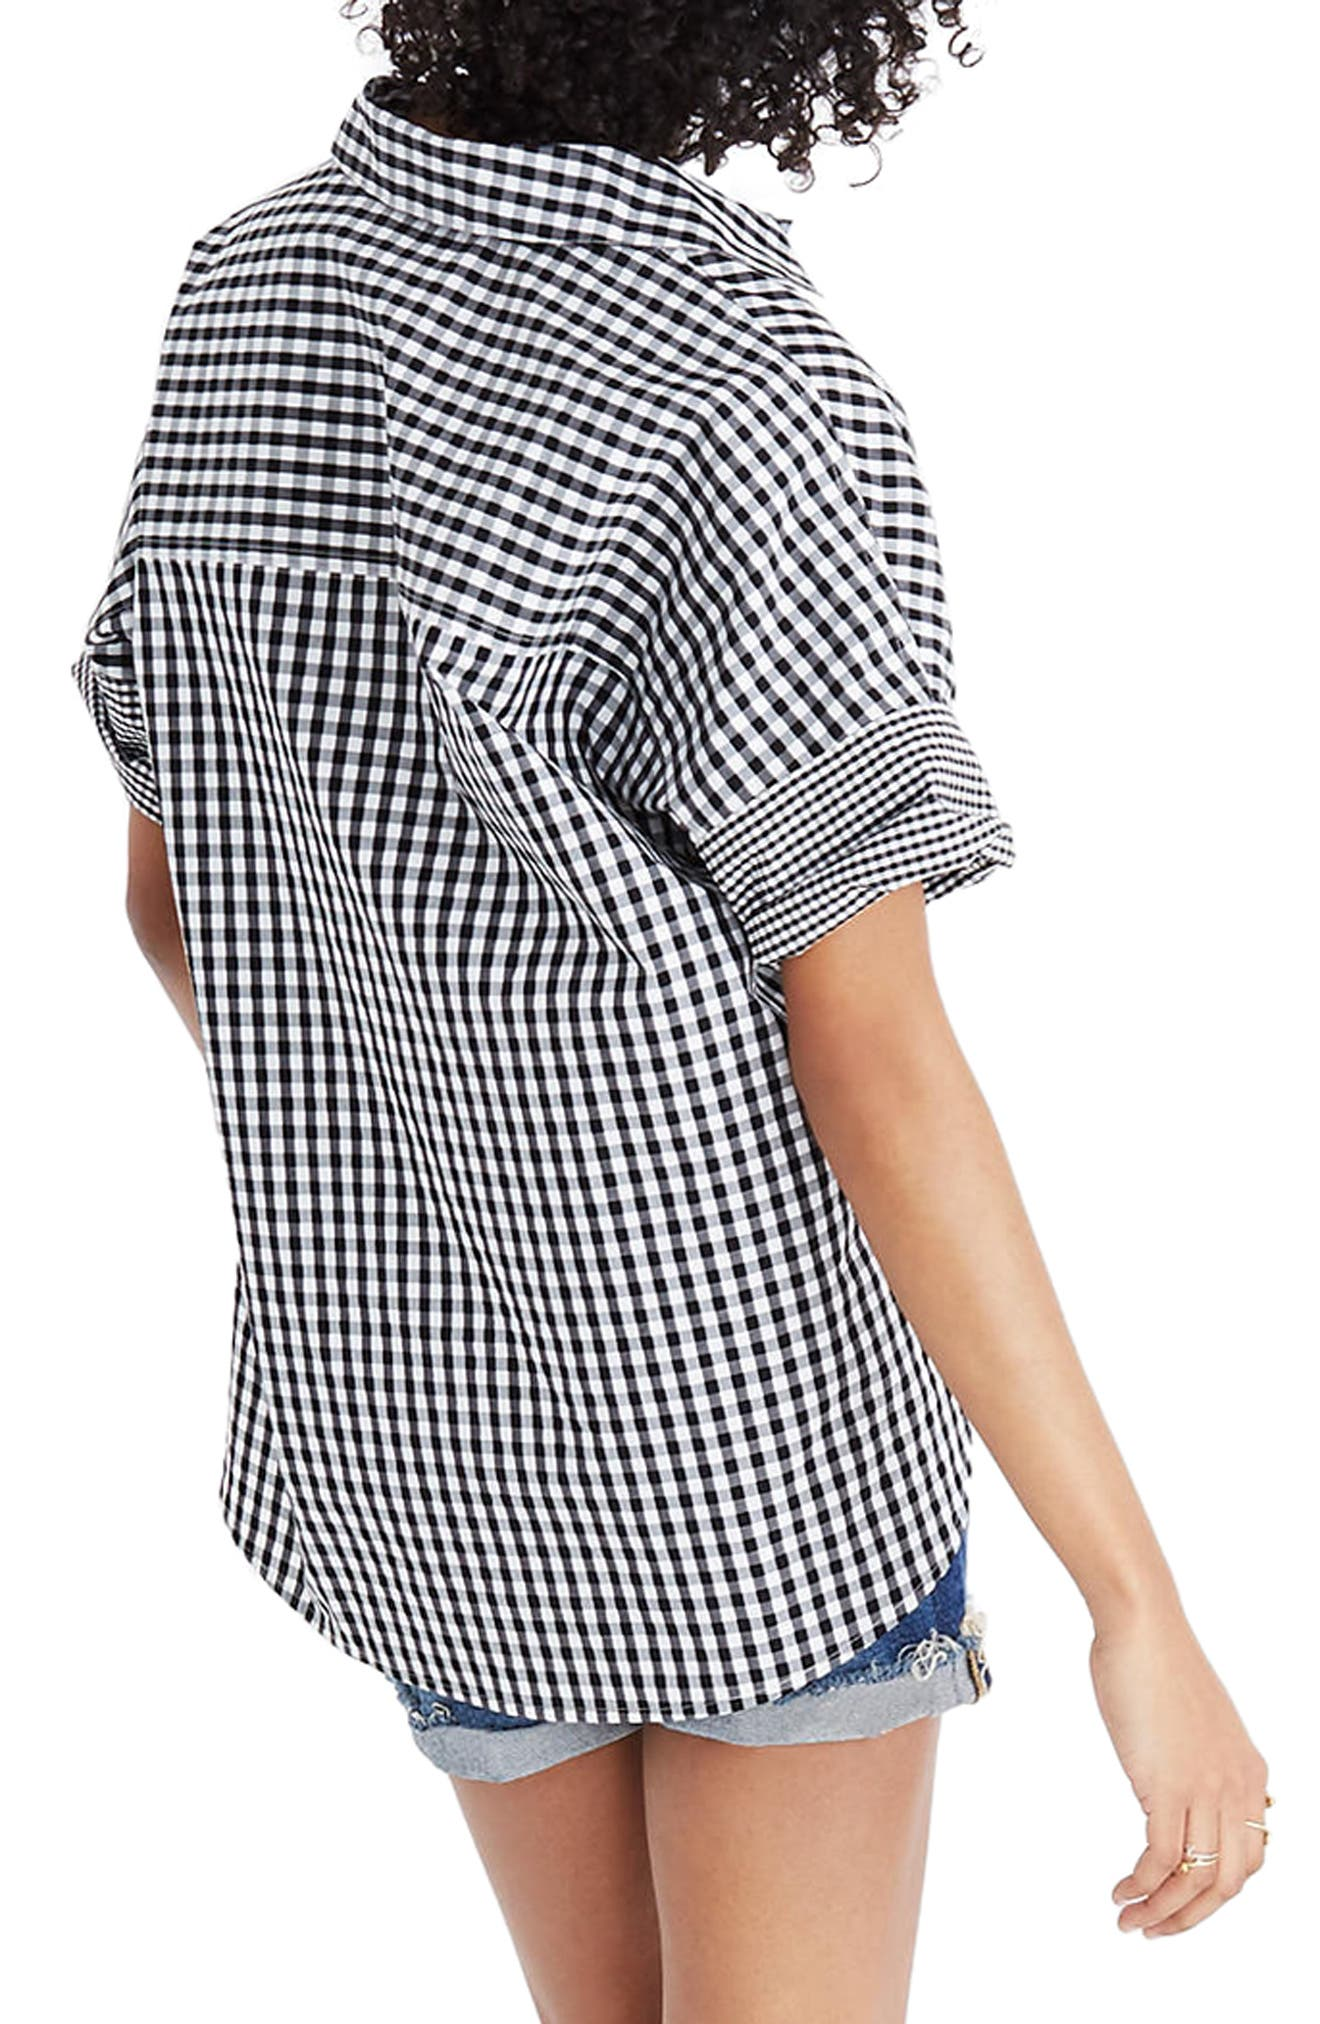 Gingham Play Button Down Shirt,                             Alternate thumbnail 2, color,                             001